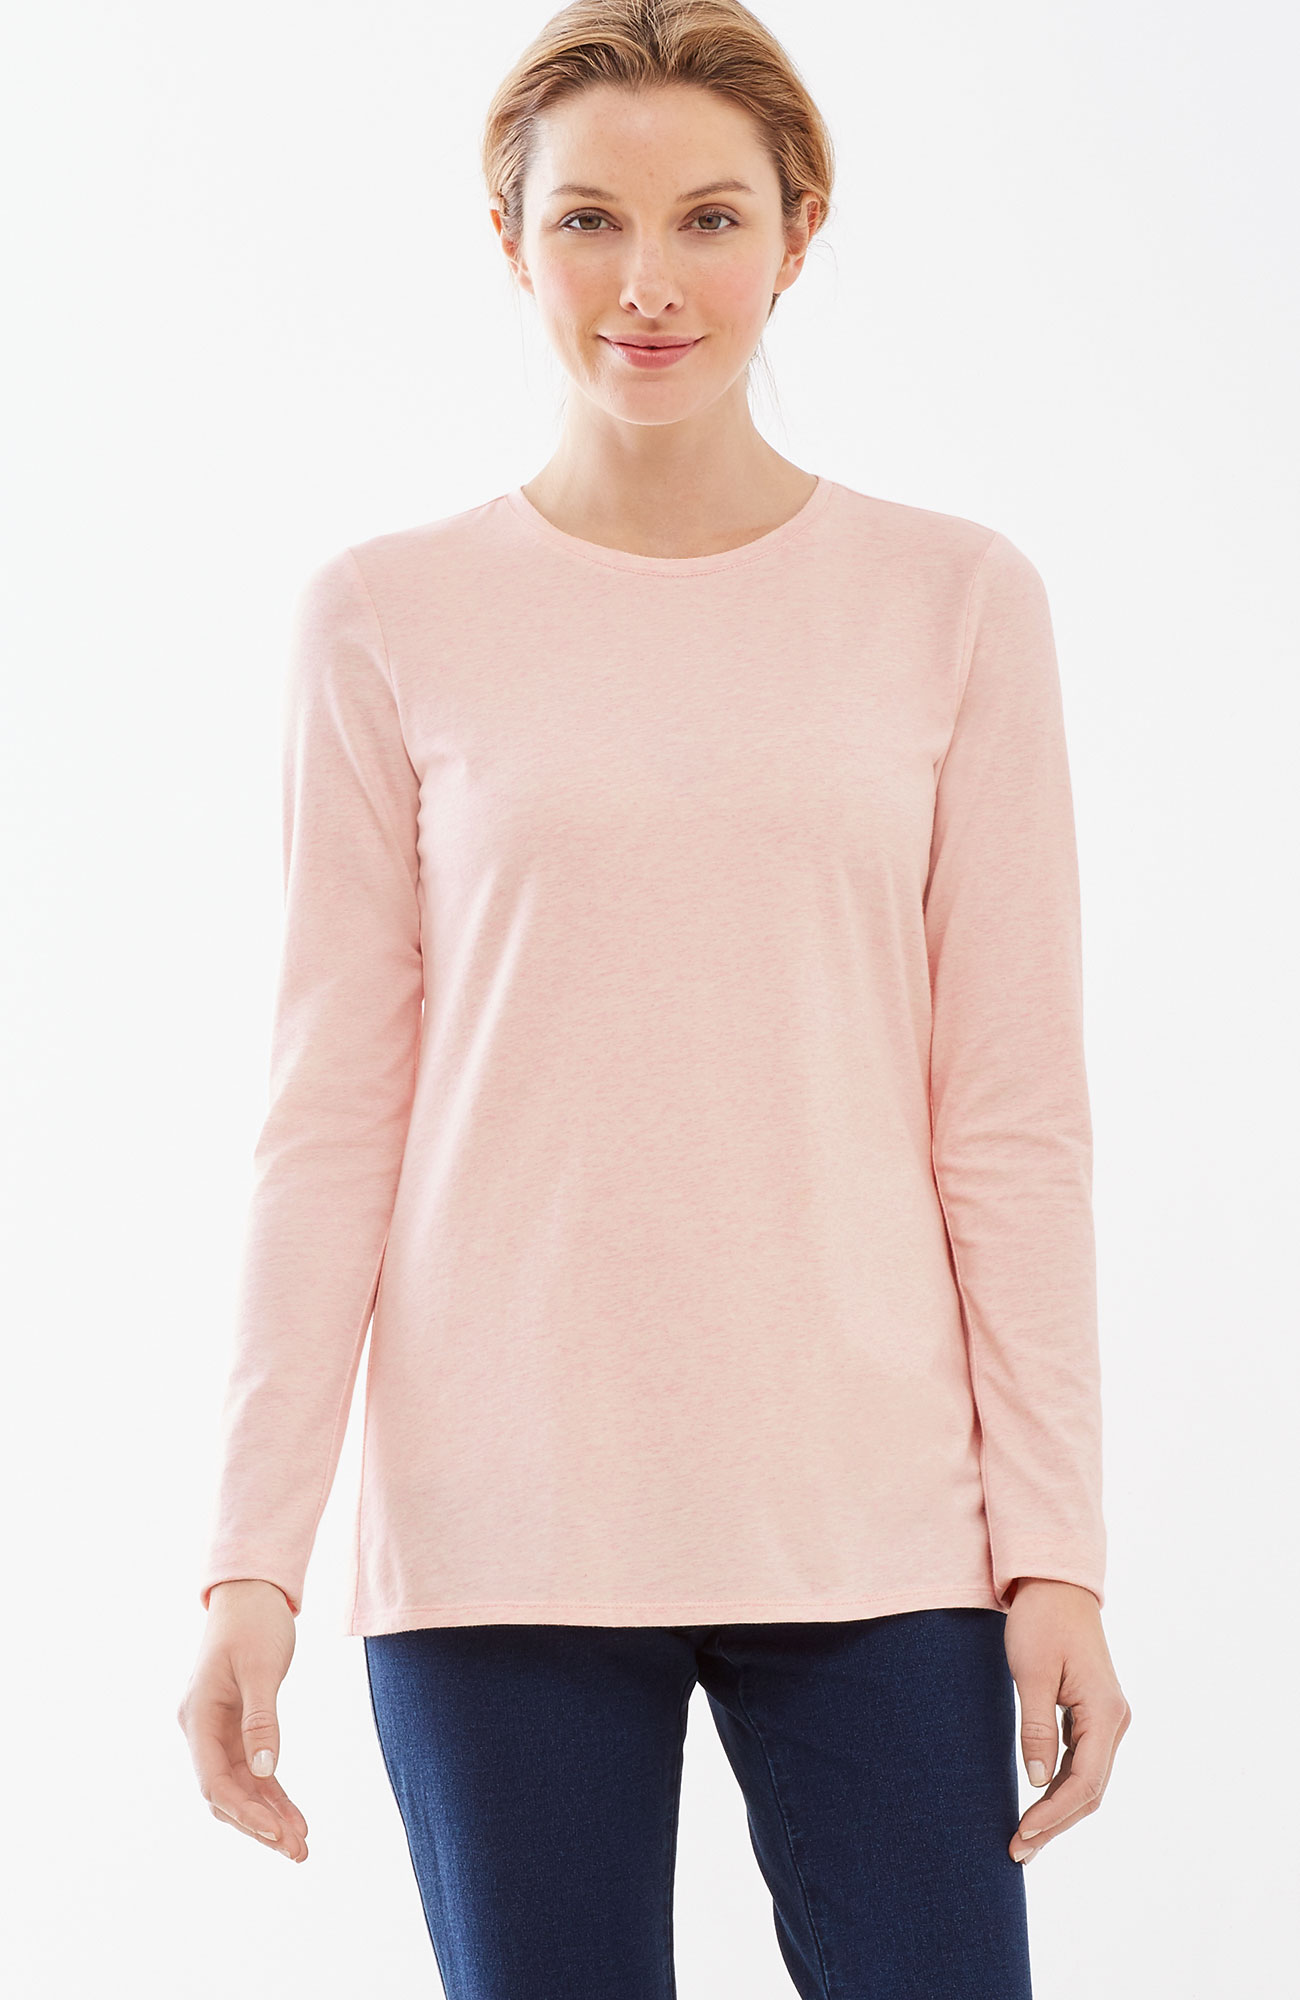 Pure Jill stretch-cotton crew-neck tee